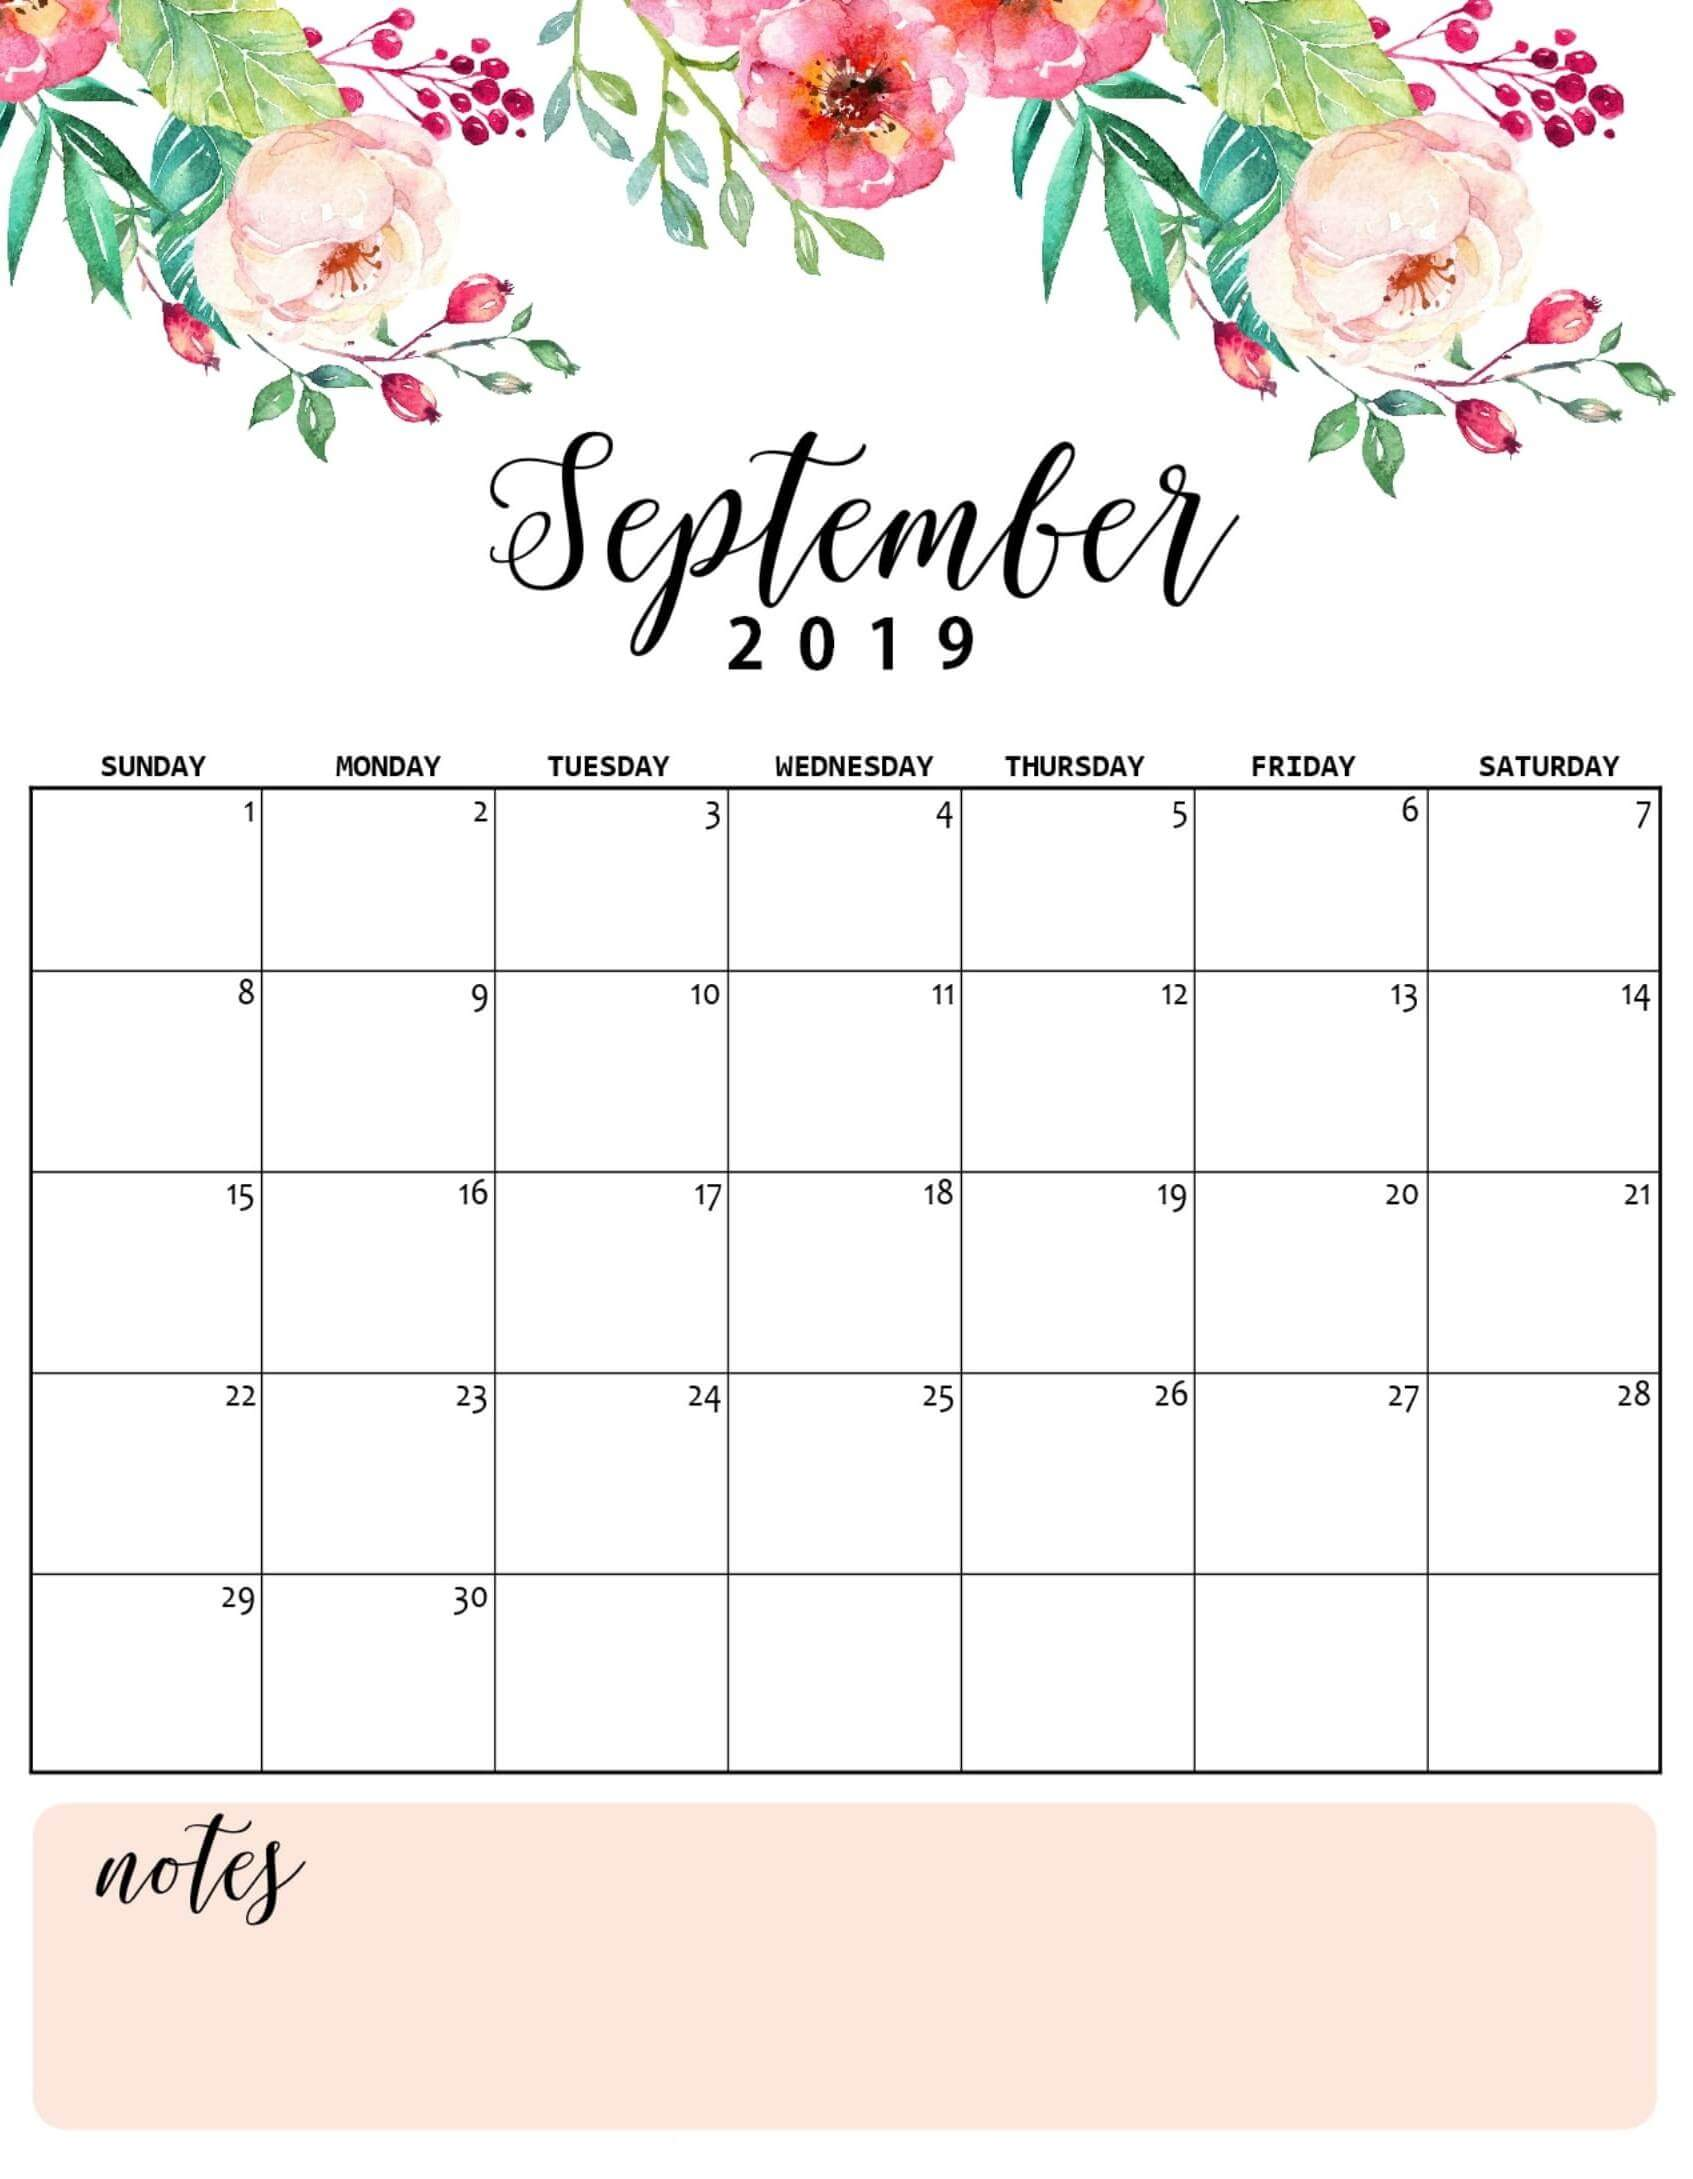 photograph about Cute Calendars titled Floral Adorable September 2019 Calendar Printable Template